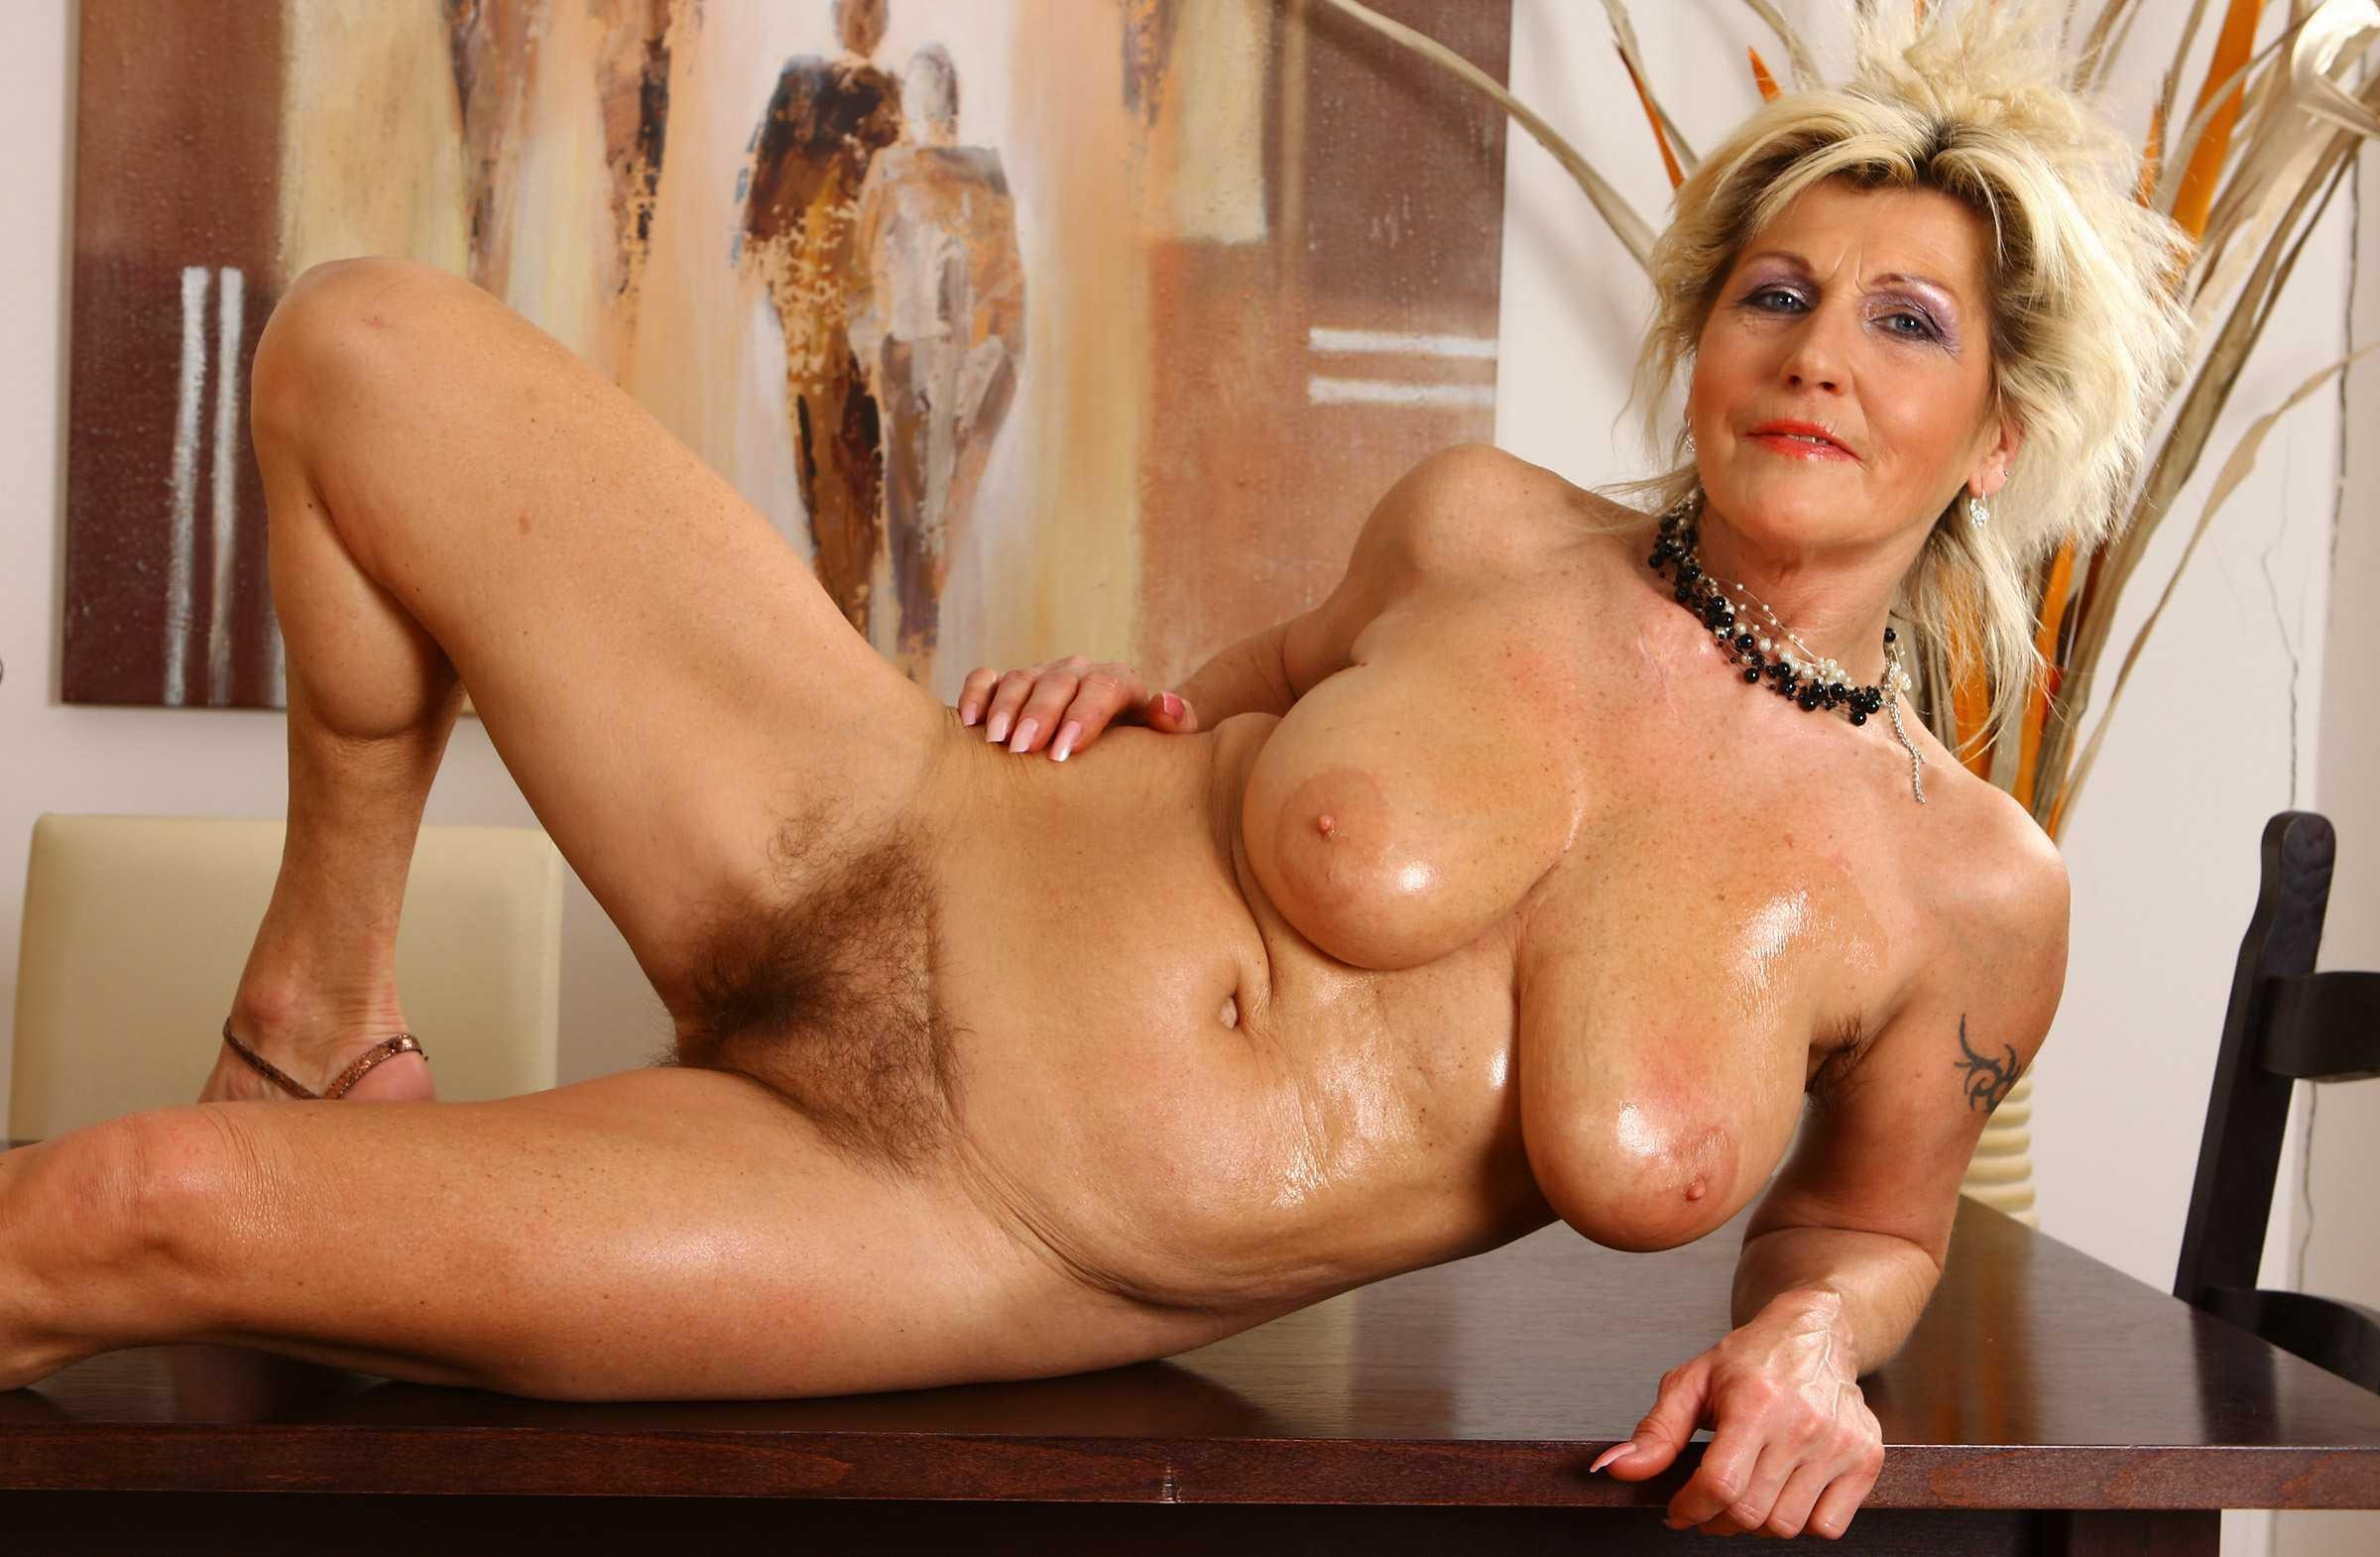 Bailey In mature porn sibiu great idea